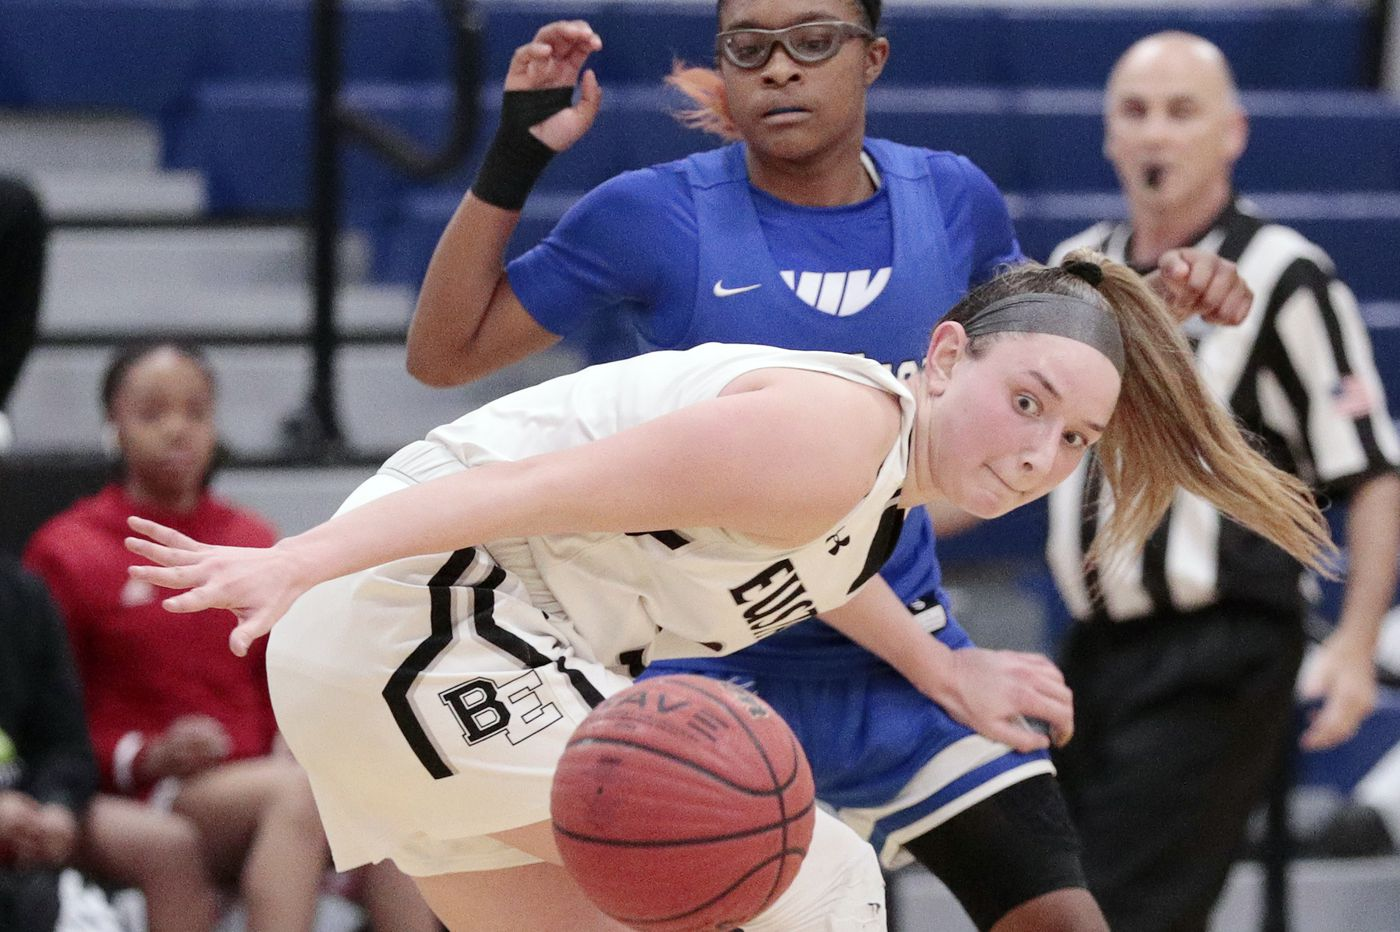 Bishop Eustace girls shine as bright as their neon sneakers in win over Westampton Tech